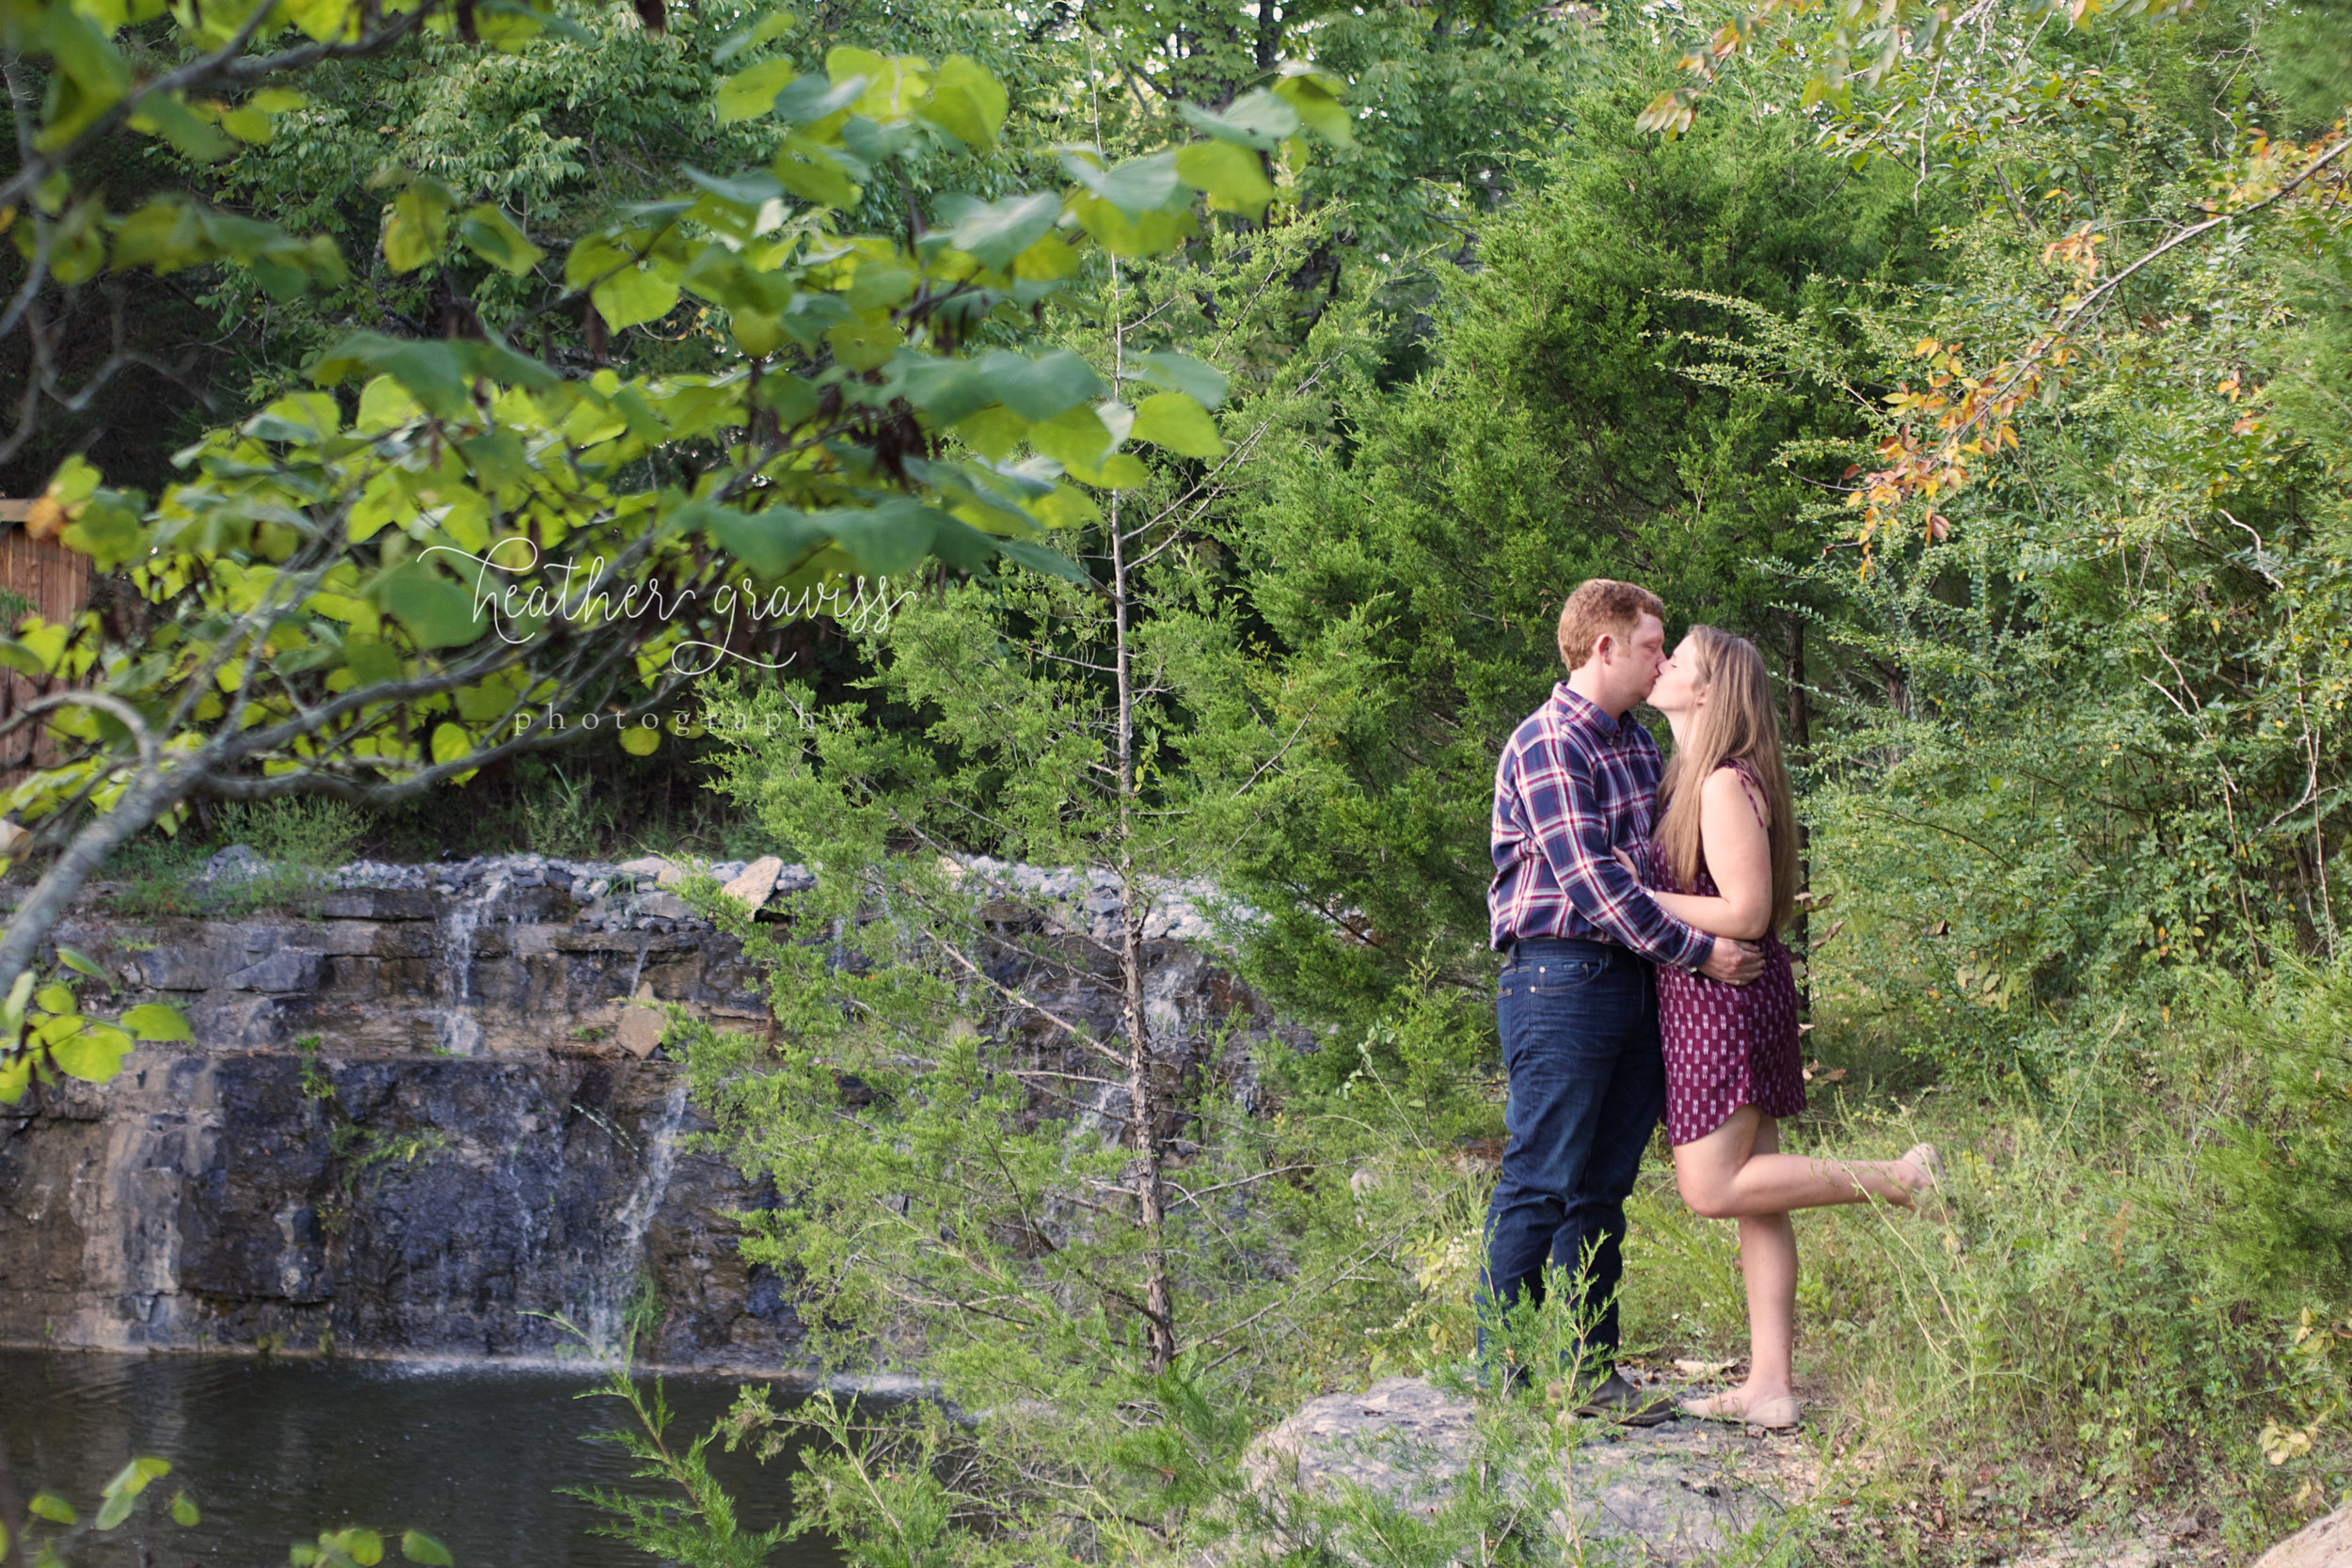 nashville middle tn engagement photographer 272.jpg